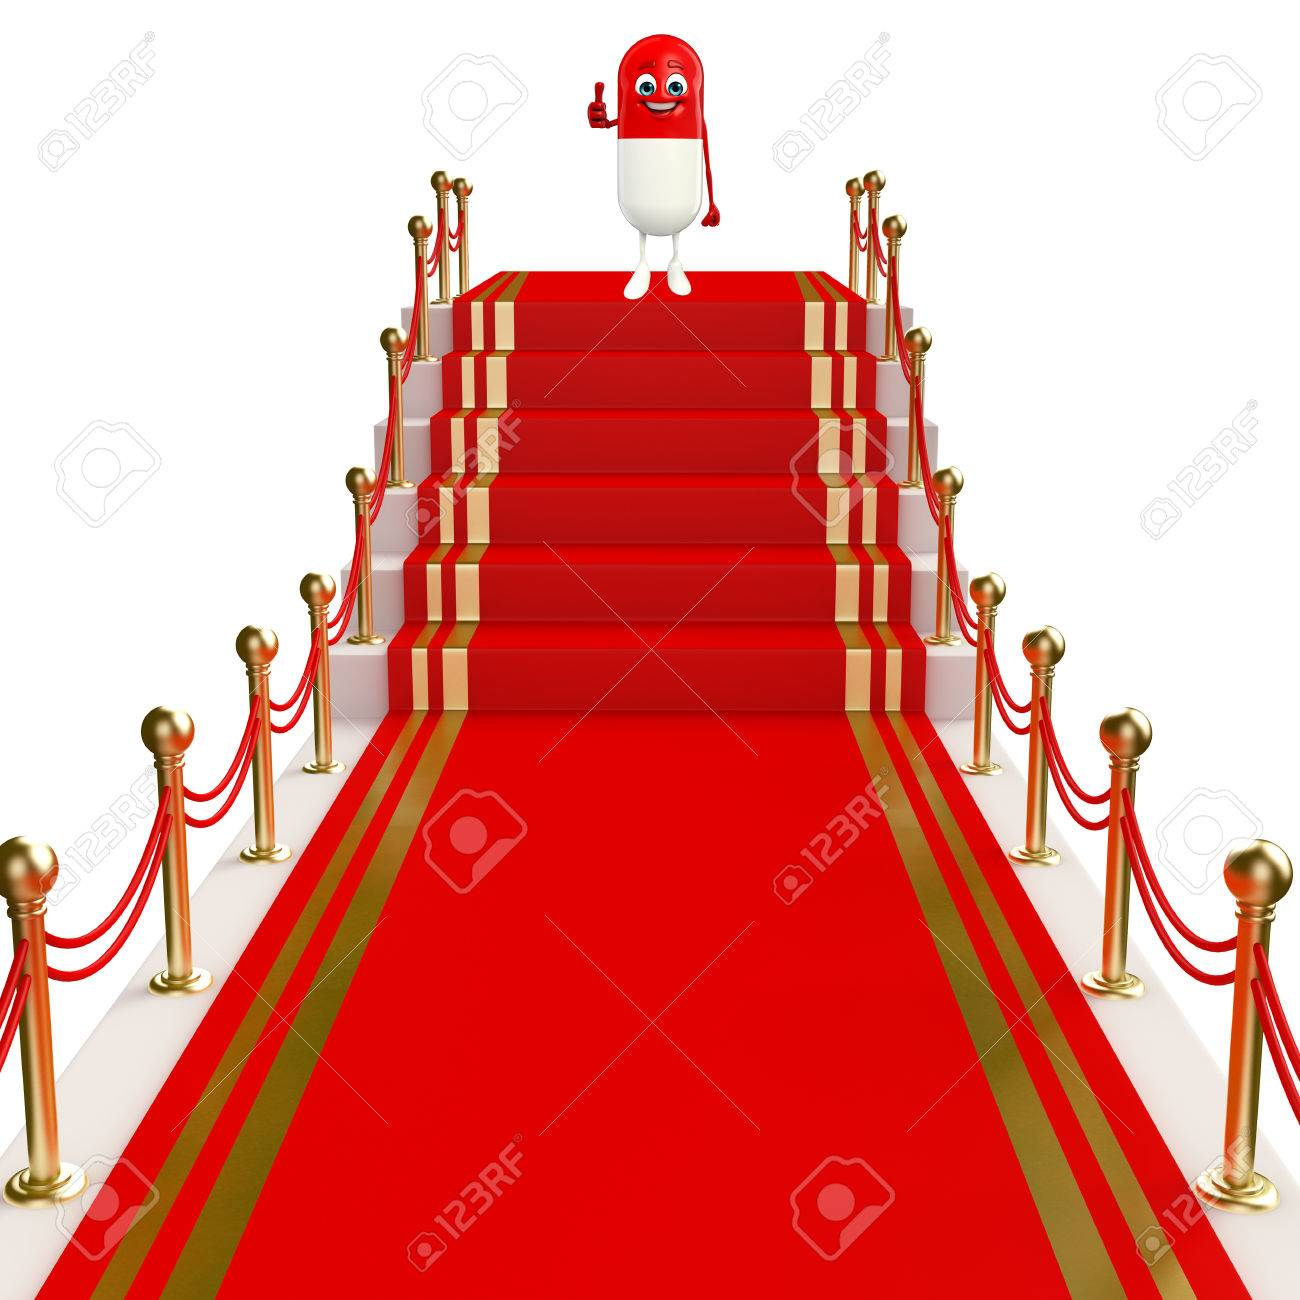 Cartoon Character Of Pill With Red Carpet Stock Photo Picture And Royalty Free Image Image 31140675